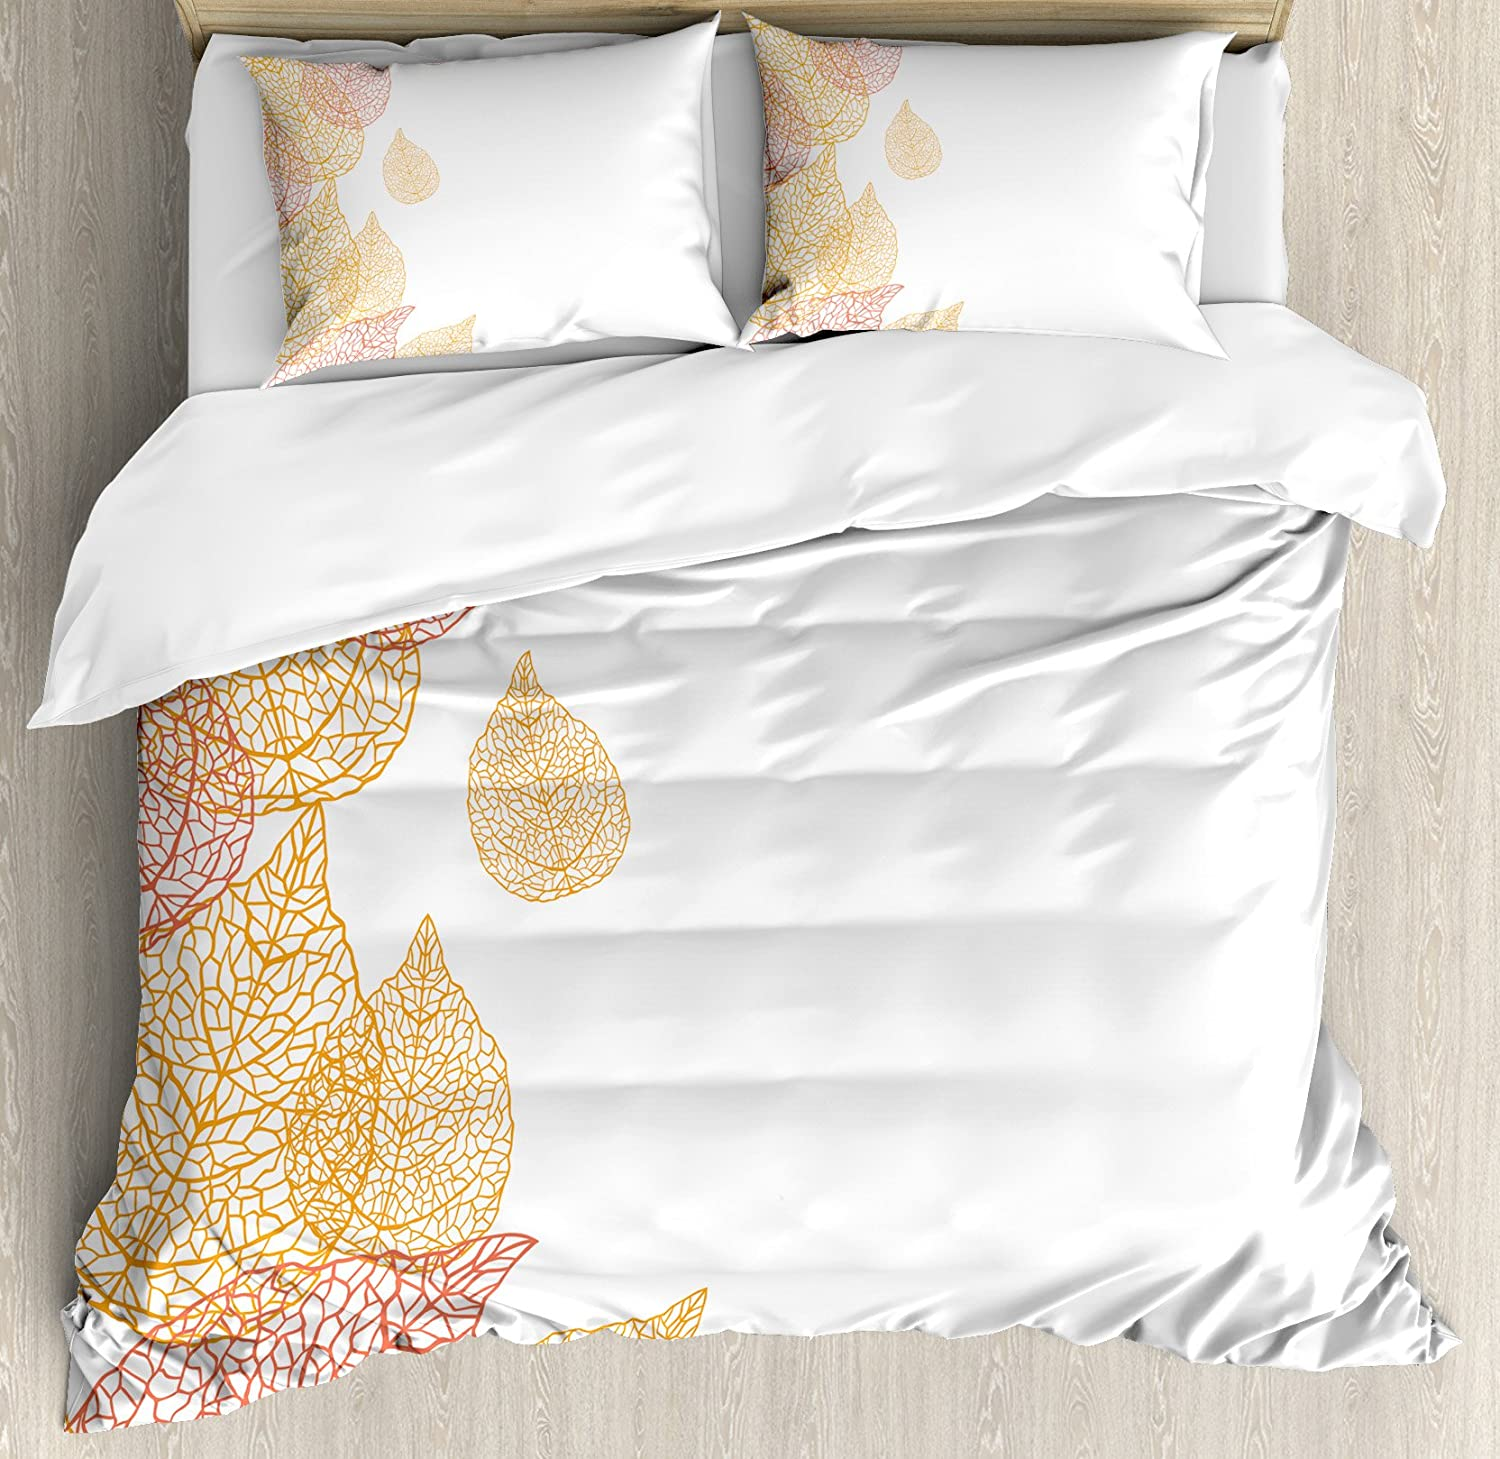 Ambesonne Leaf Duvet Cover Set, Illustration of Fall Leaves Modern Pattern Romantic Art with Soft Autumn Colors, Decorative 3 Piece Bedding Set with 2 Pillow Shams, King Size, Coral Marigold